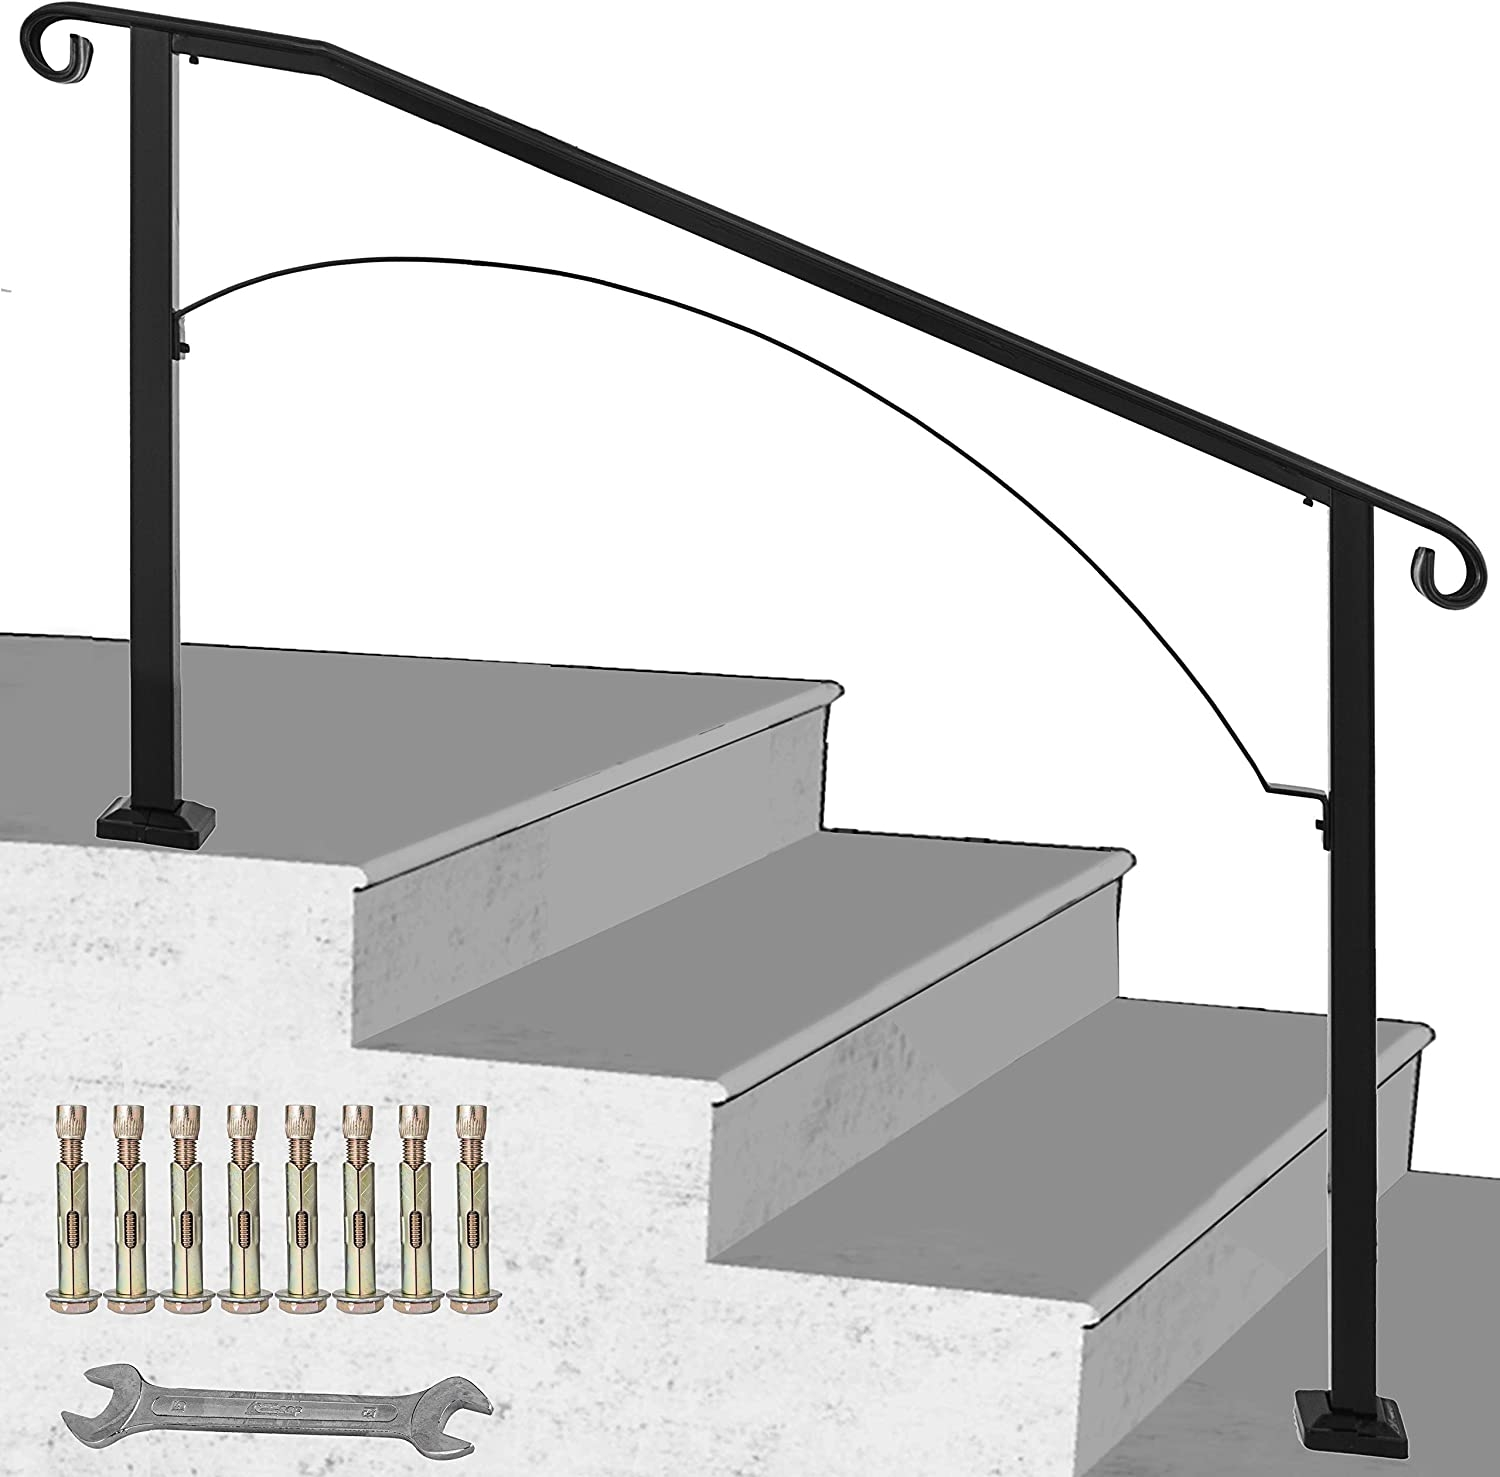 Happybuy Handrail Arch 3 Fits 3 Or 4 Steps Matte Black Stair Rail   Installing Wrought Iron Railings On Stairs   Railing Kits   Concrete Steps   Iron Balusters   Outdoor Stair   Stair Spindles